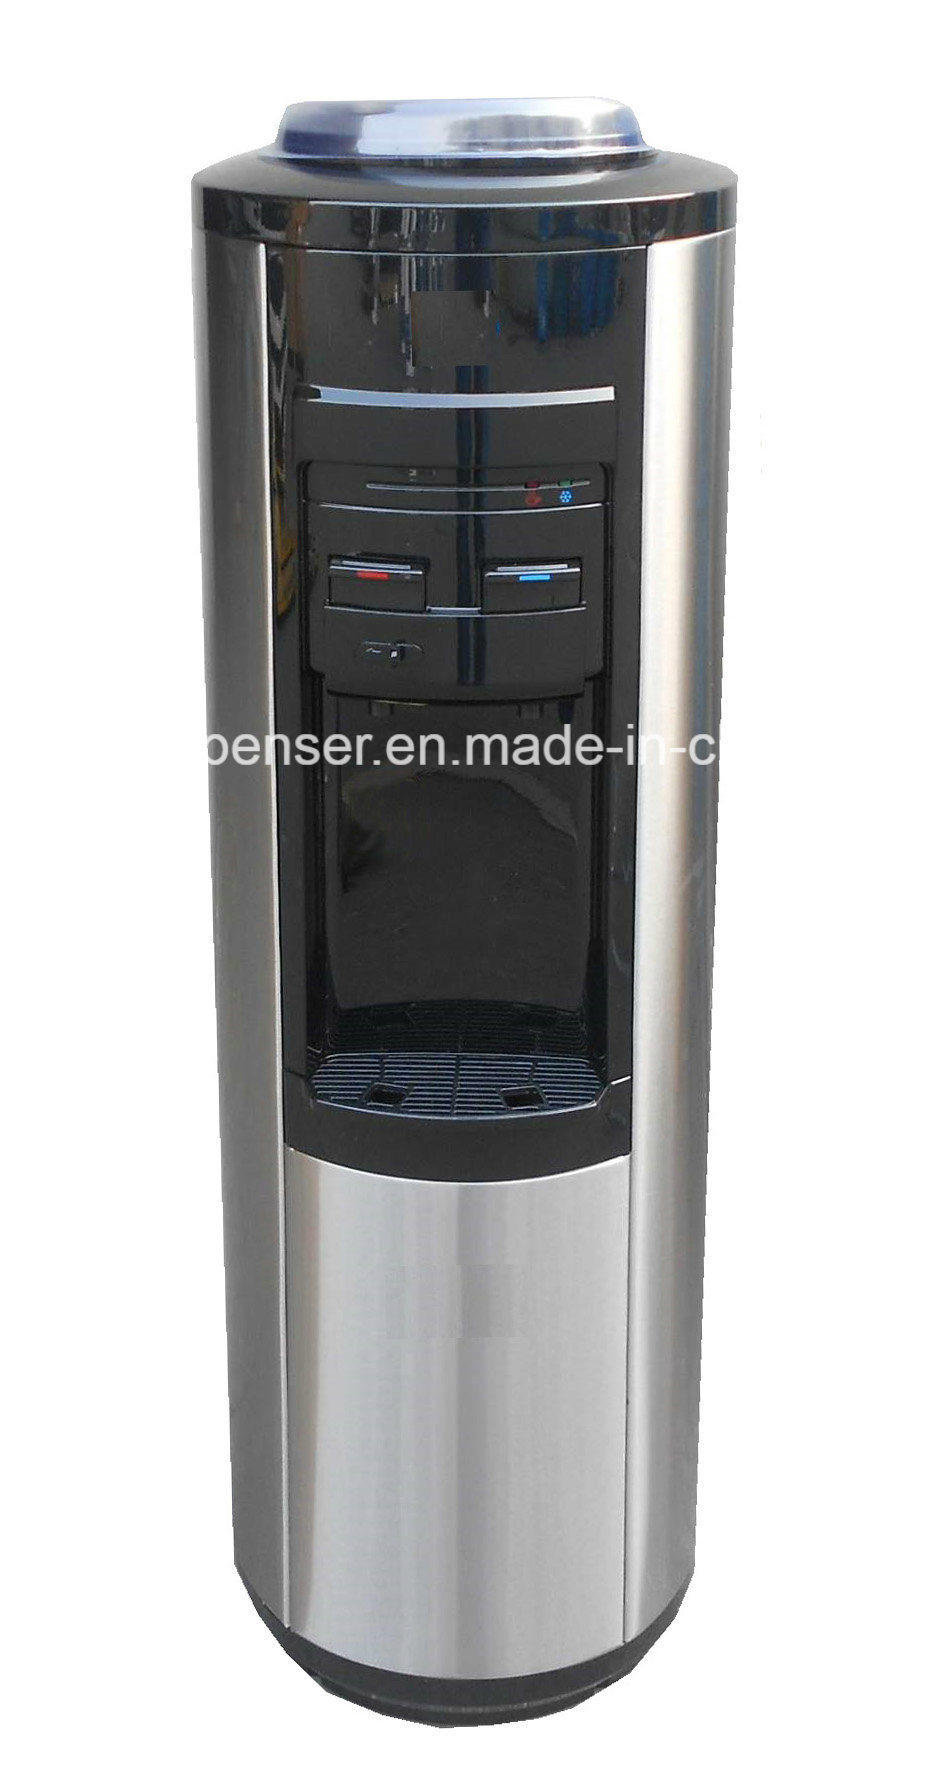 Fashionable Stainless Steel Water Cooler with Child-Safety Lock Faucet